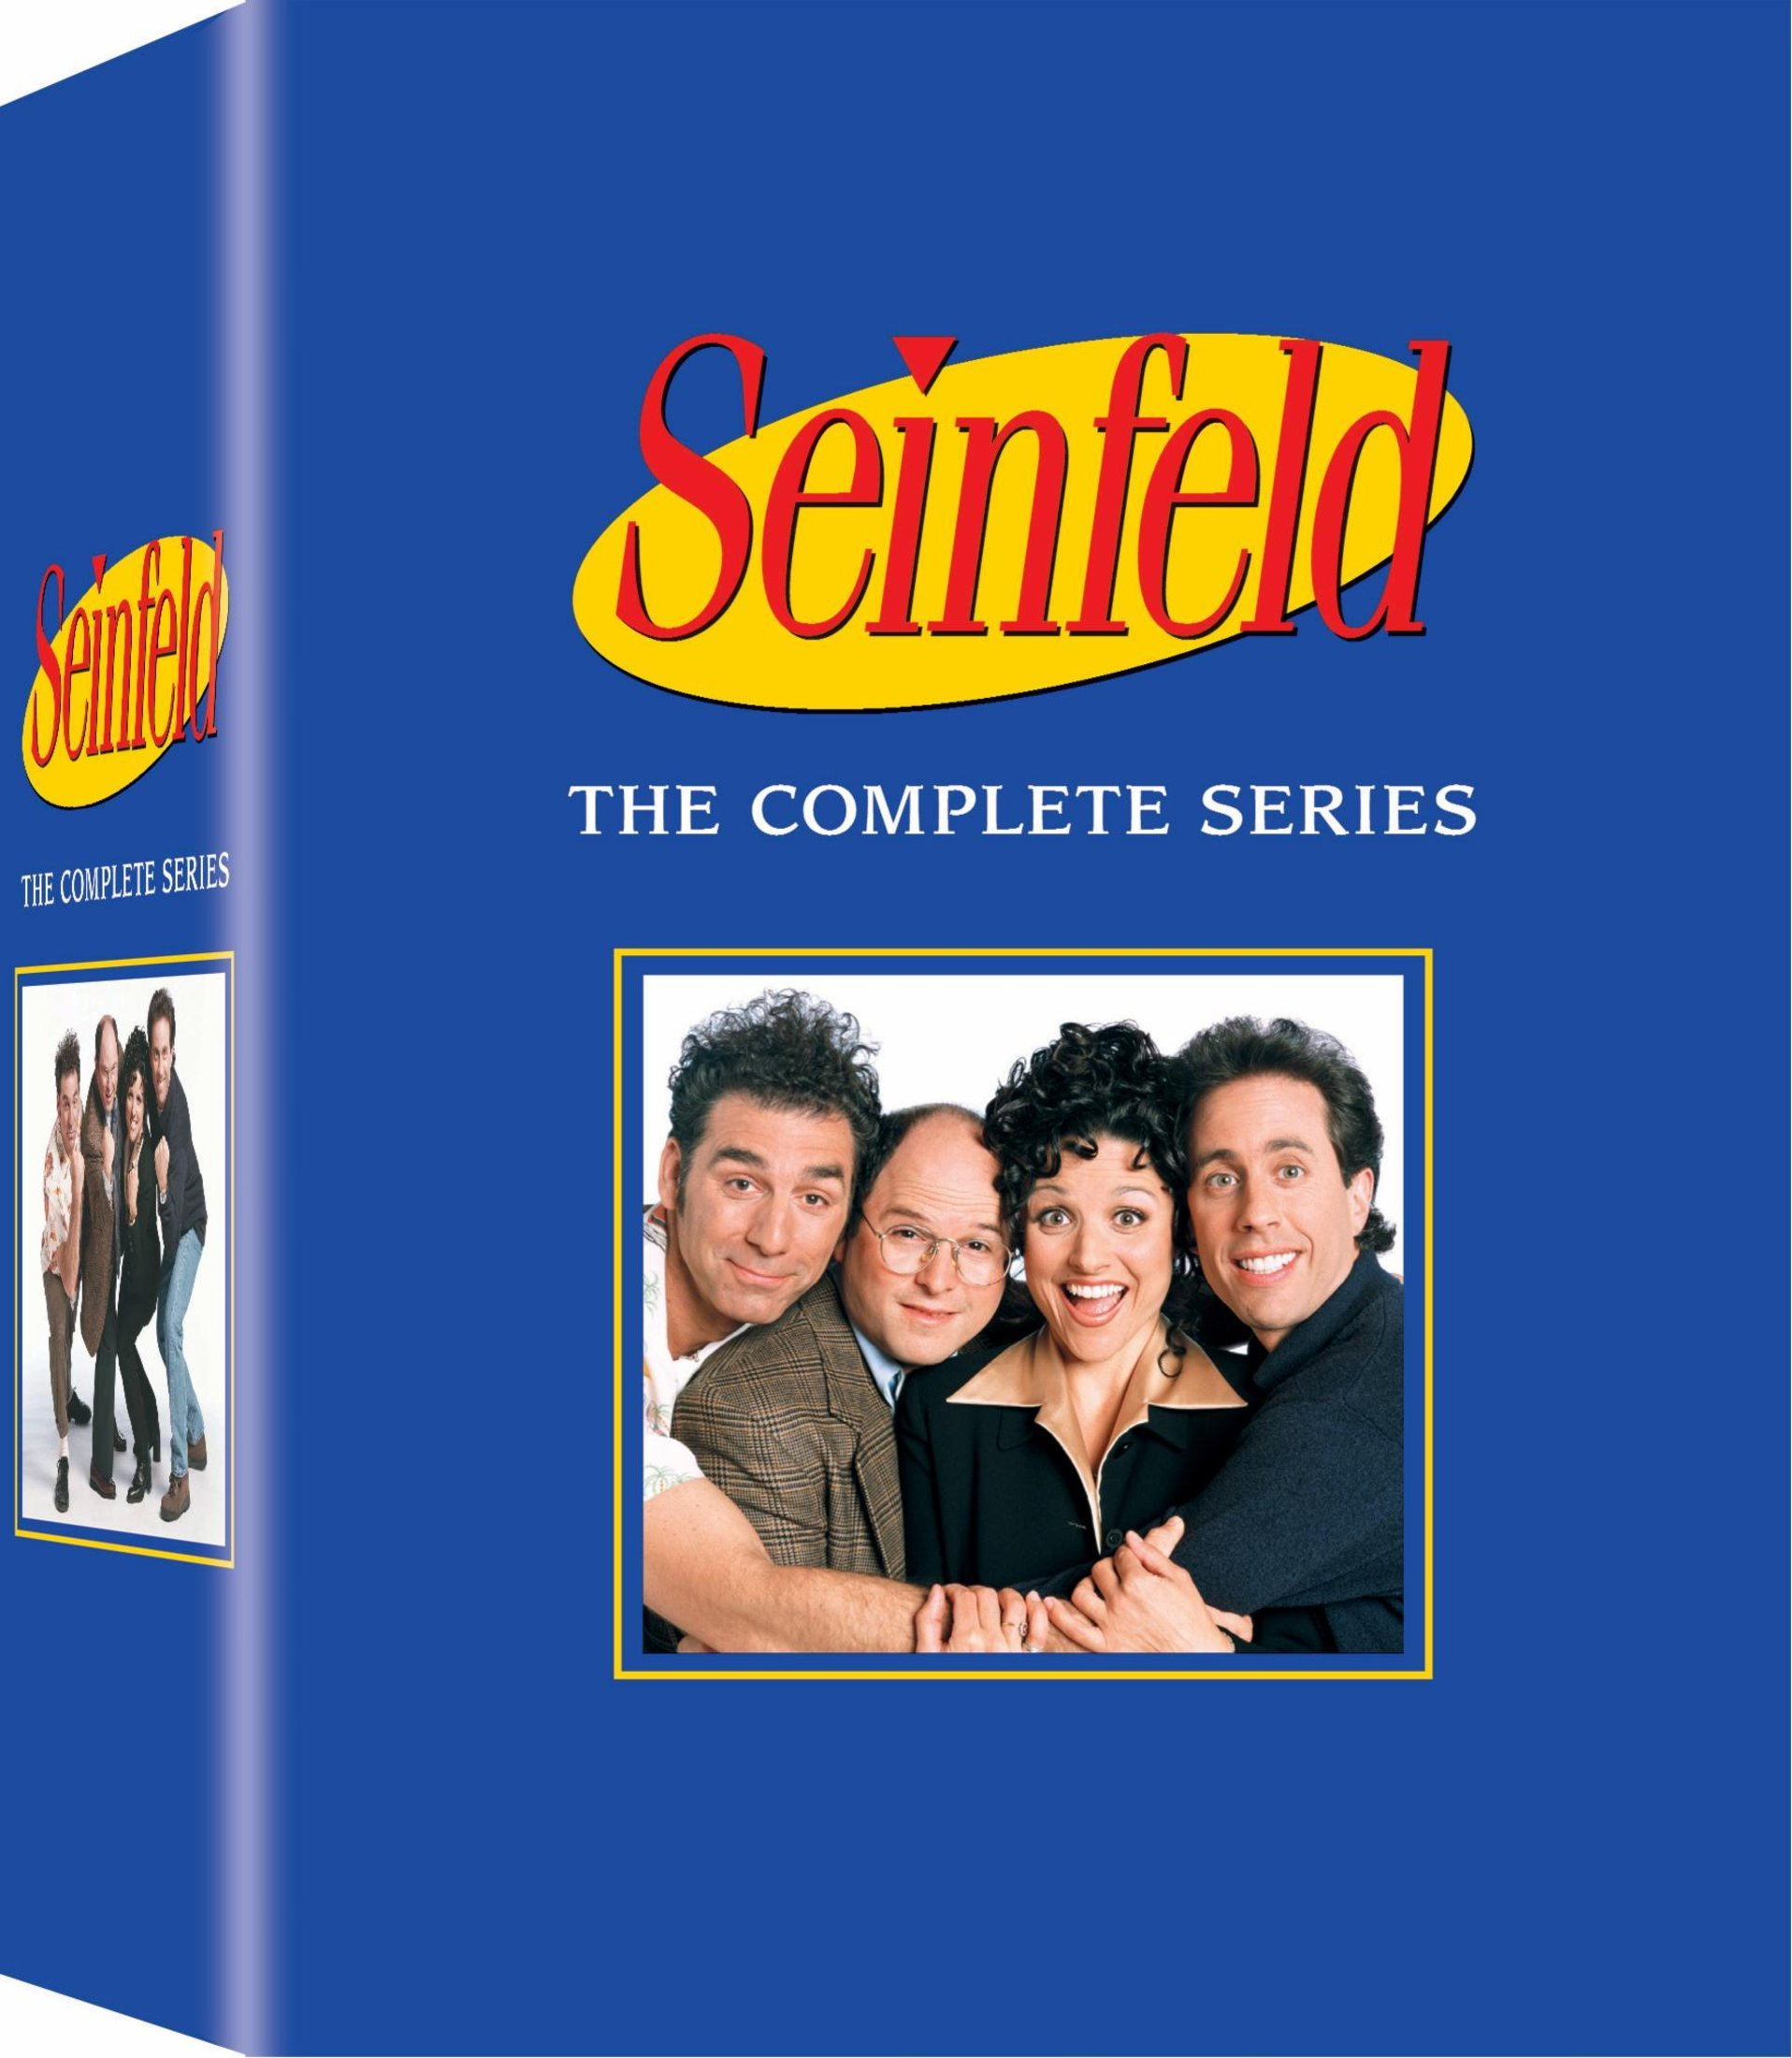 DVD : Seinfeld: The Complete Series (Boxed Set, 33 Disc)